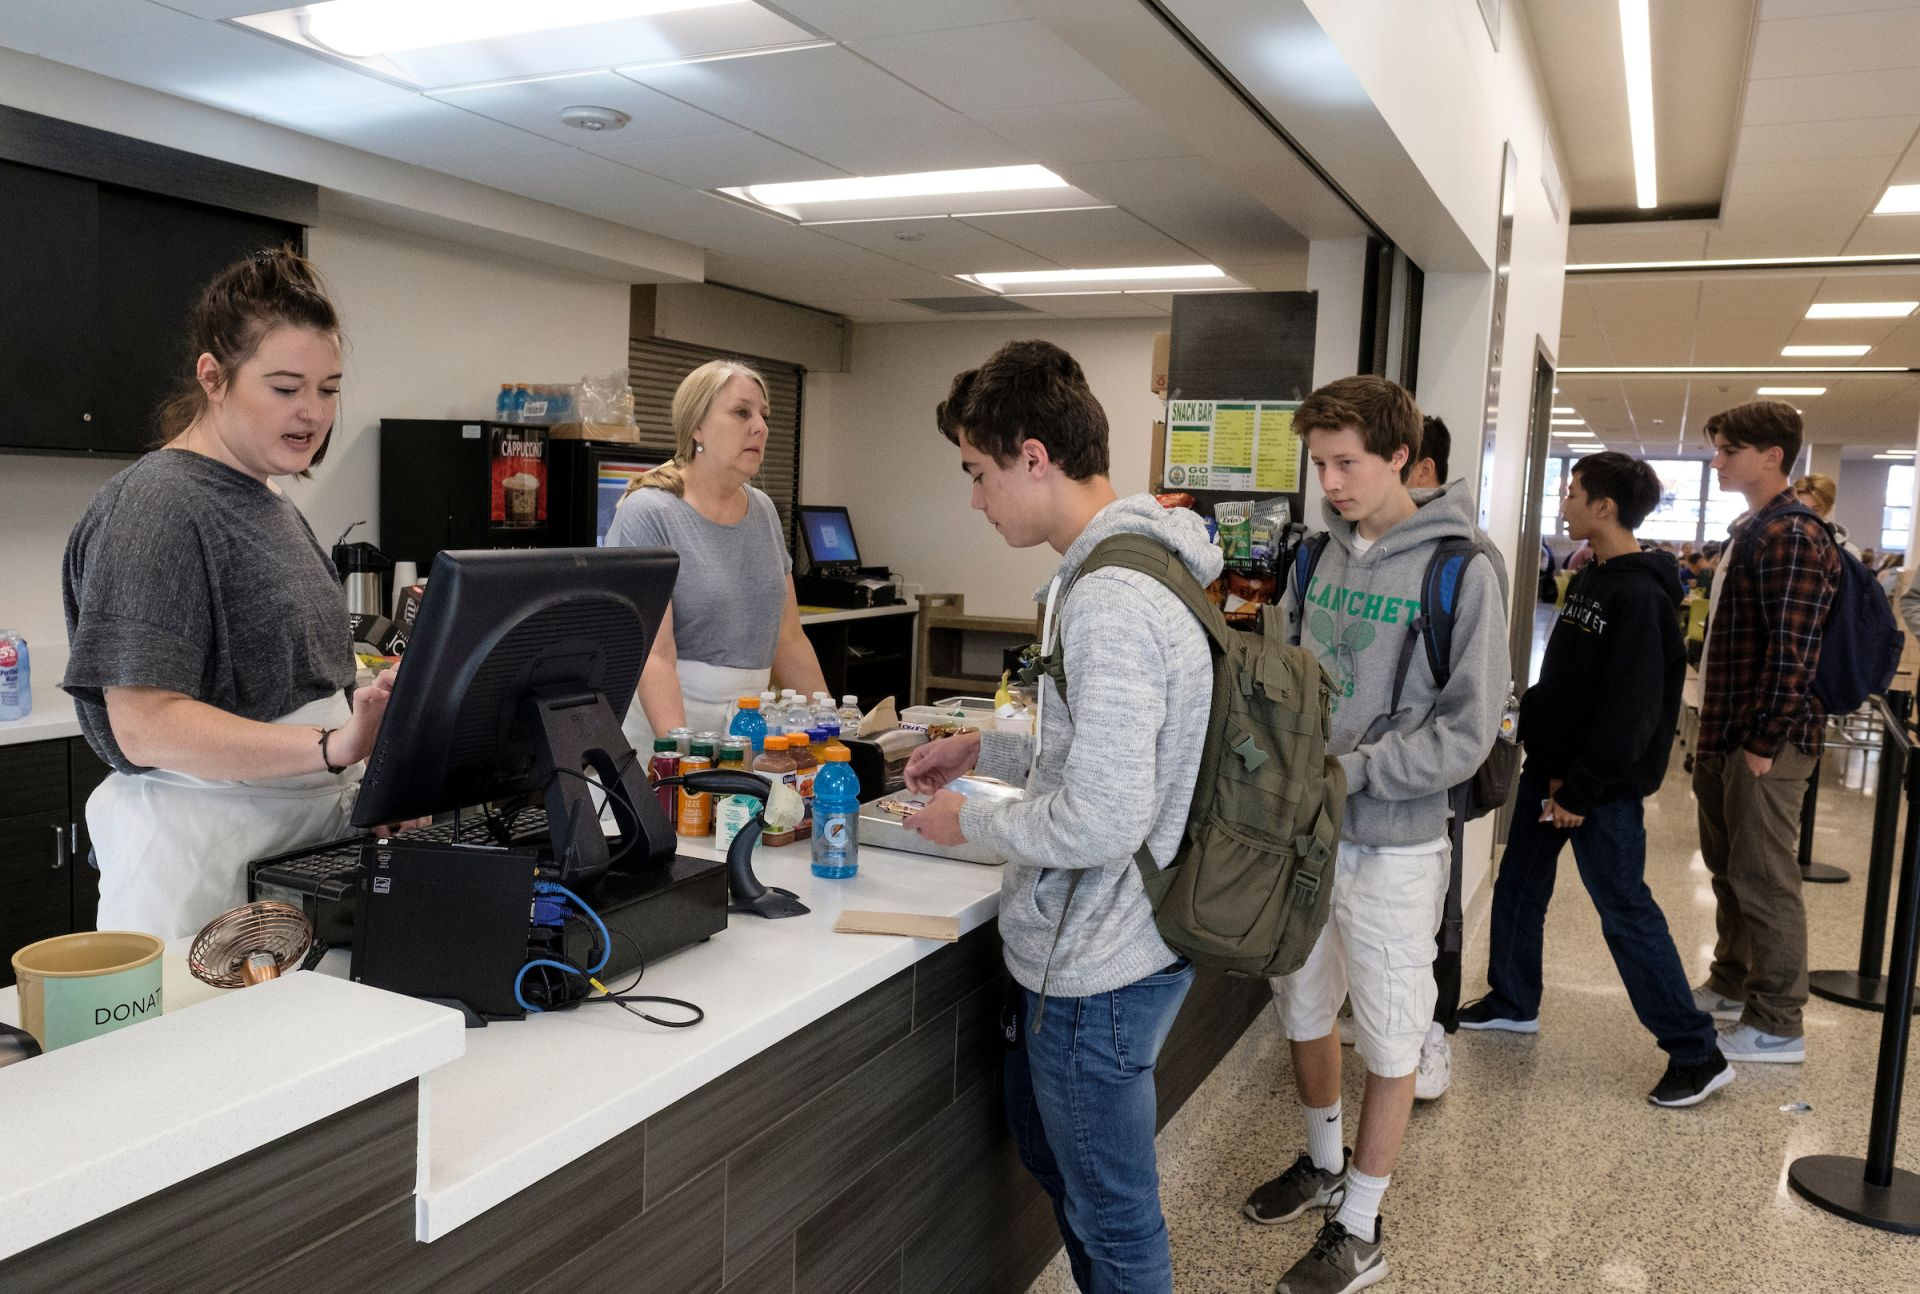 Our new Brave Cafe--stocked with a state of the art espresso machine and staffed by a full-time barista-- serves up tasty snacks and drinks to students and faculty.